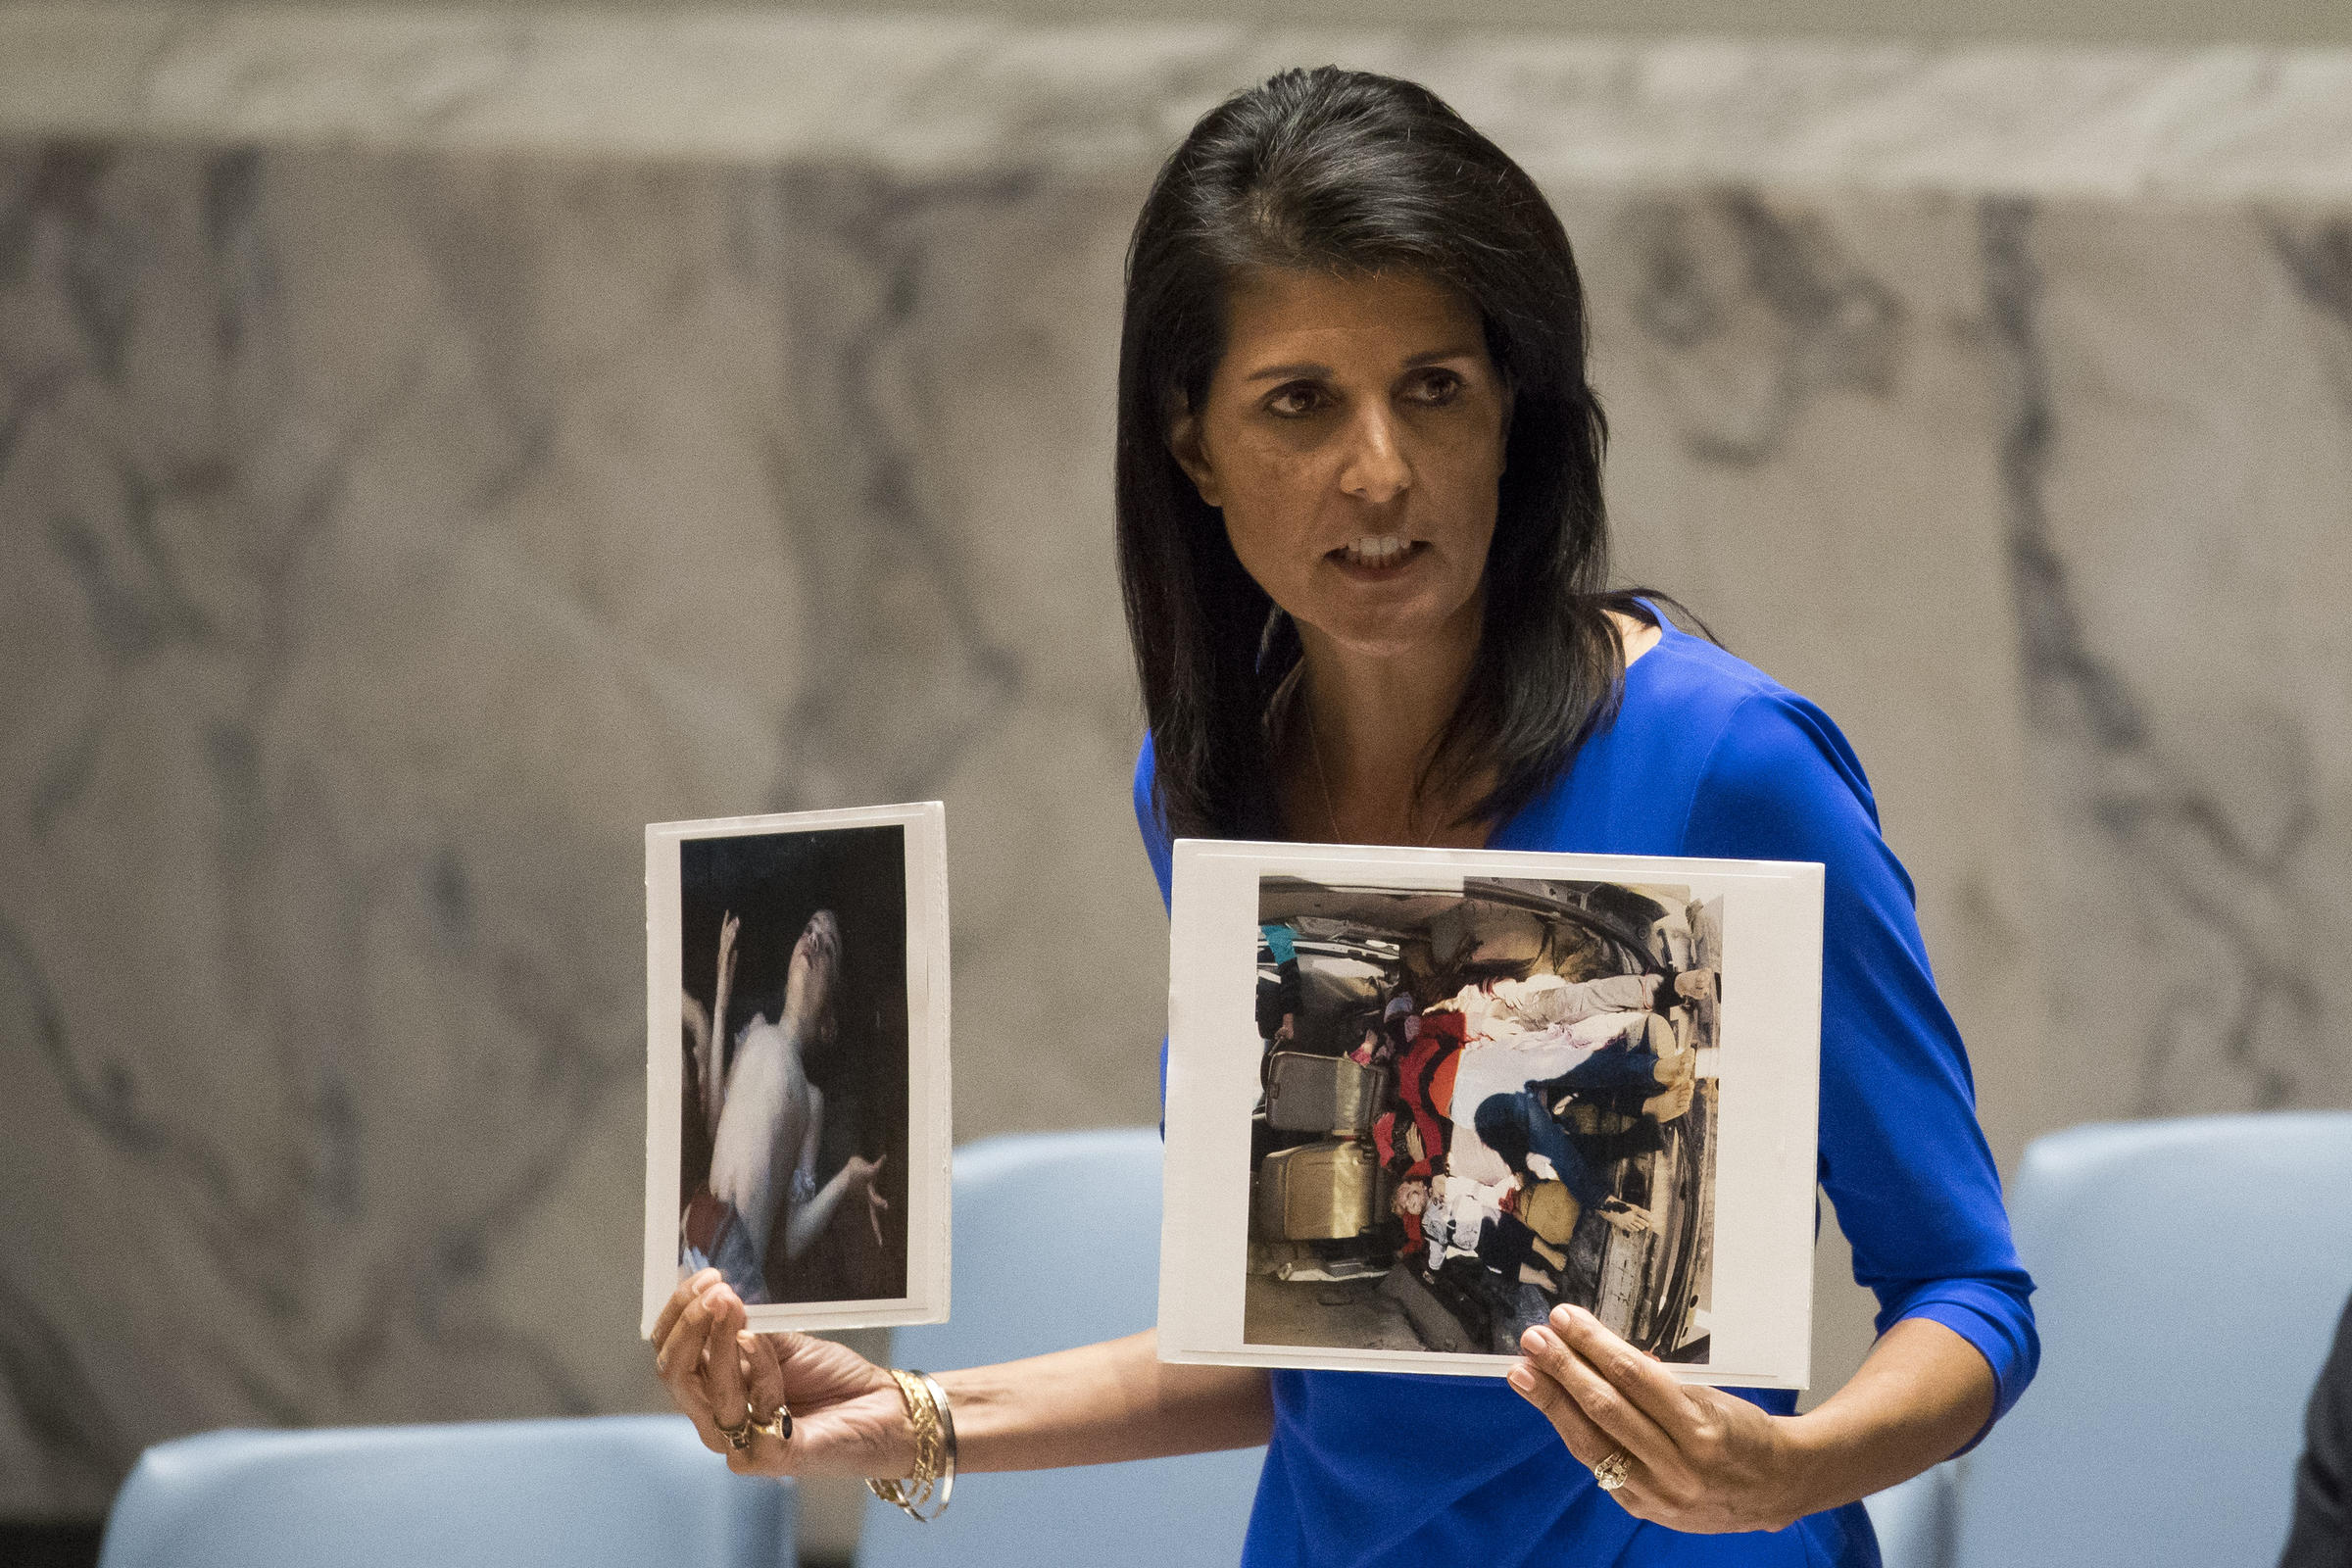 essay poison gas accusations greatly raise syria stakes wuwm u s ambassador to the united nations nikki haley holds up photos of victims of the syrian